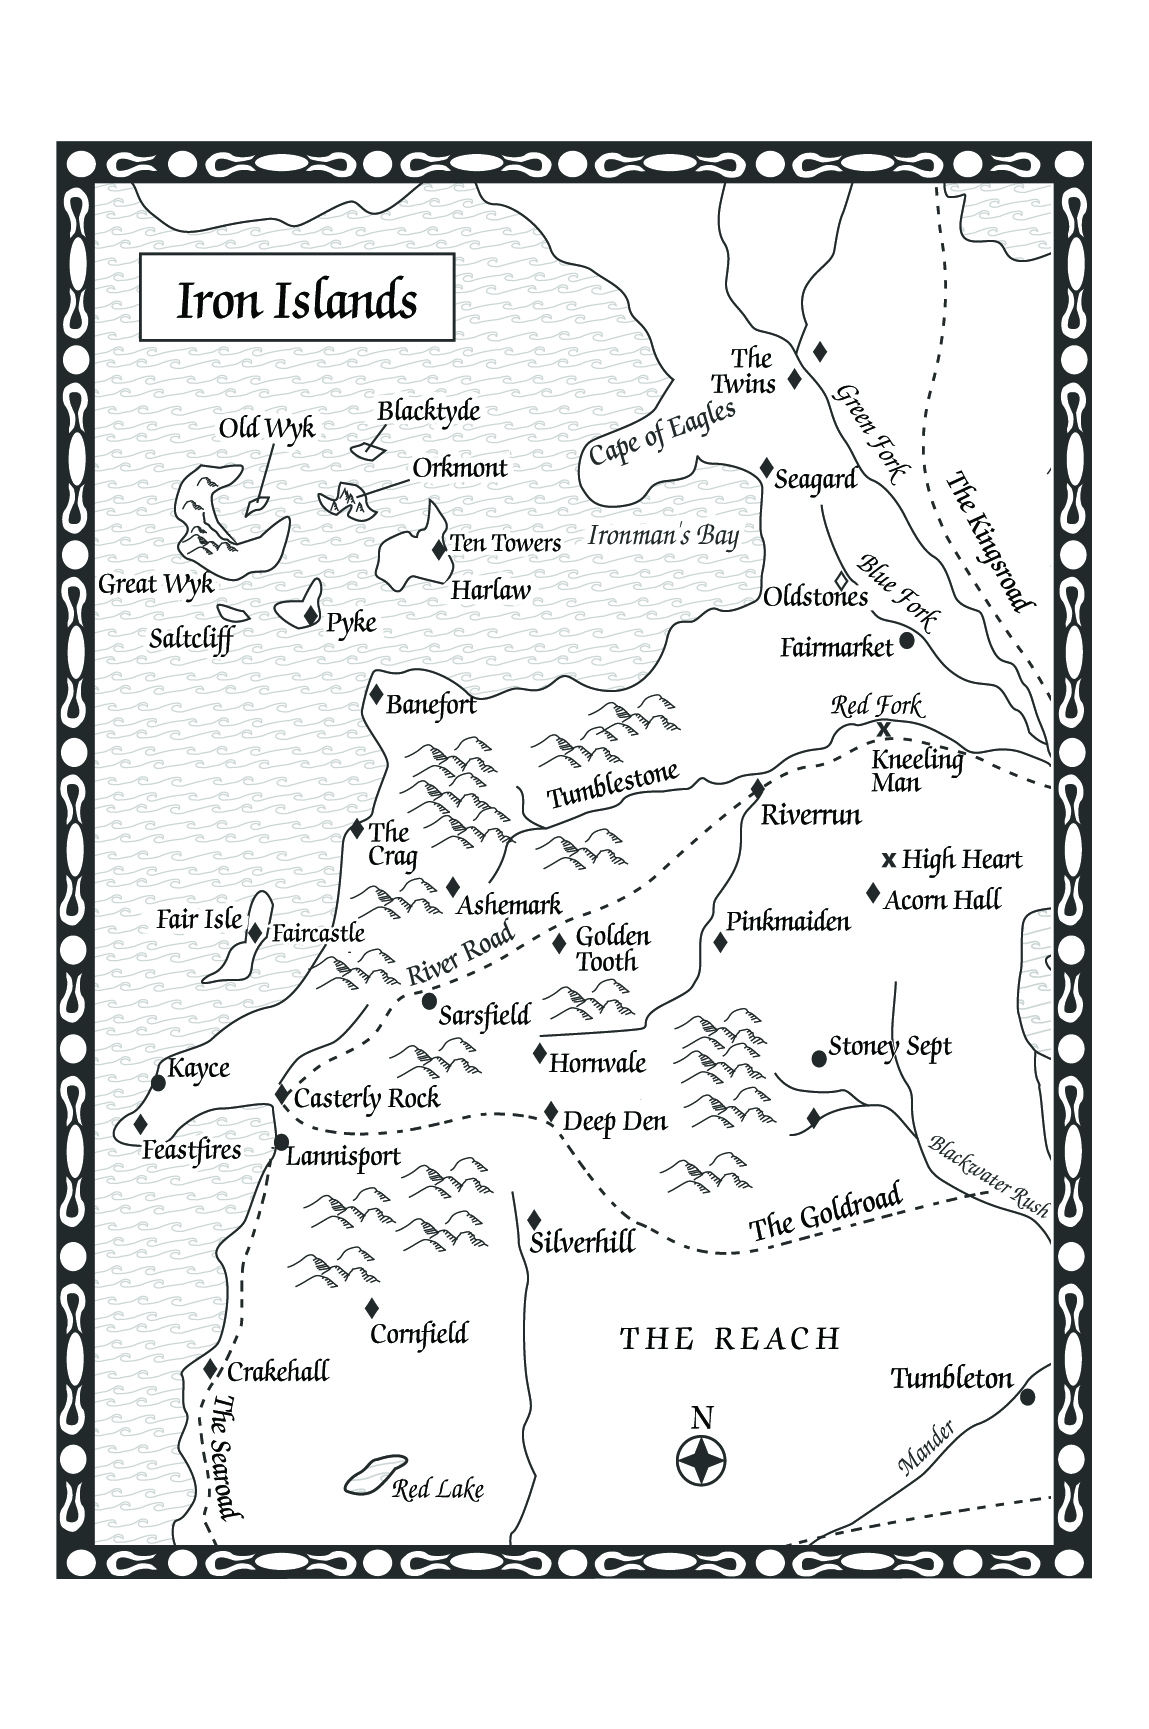 A Feast For Crows Map Of The Iron Islands